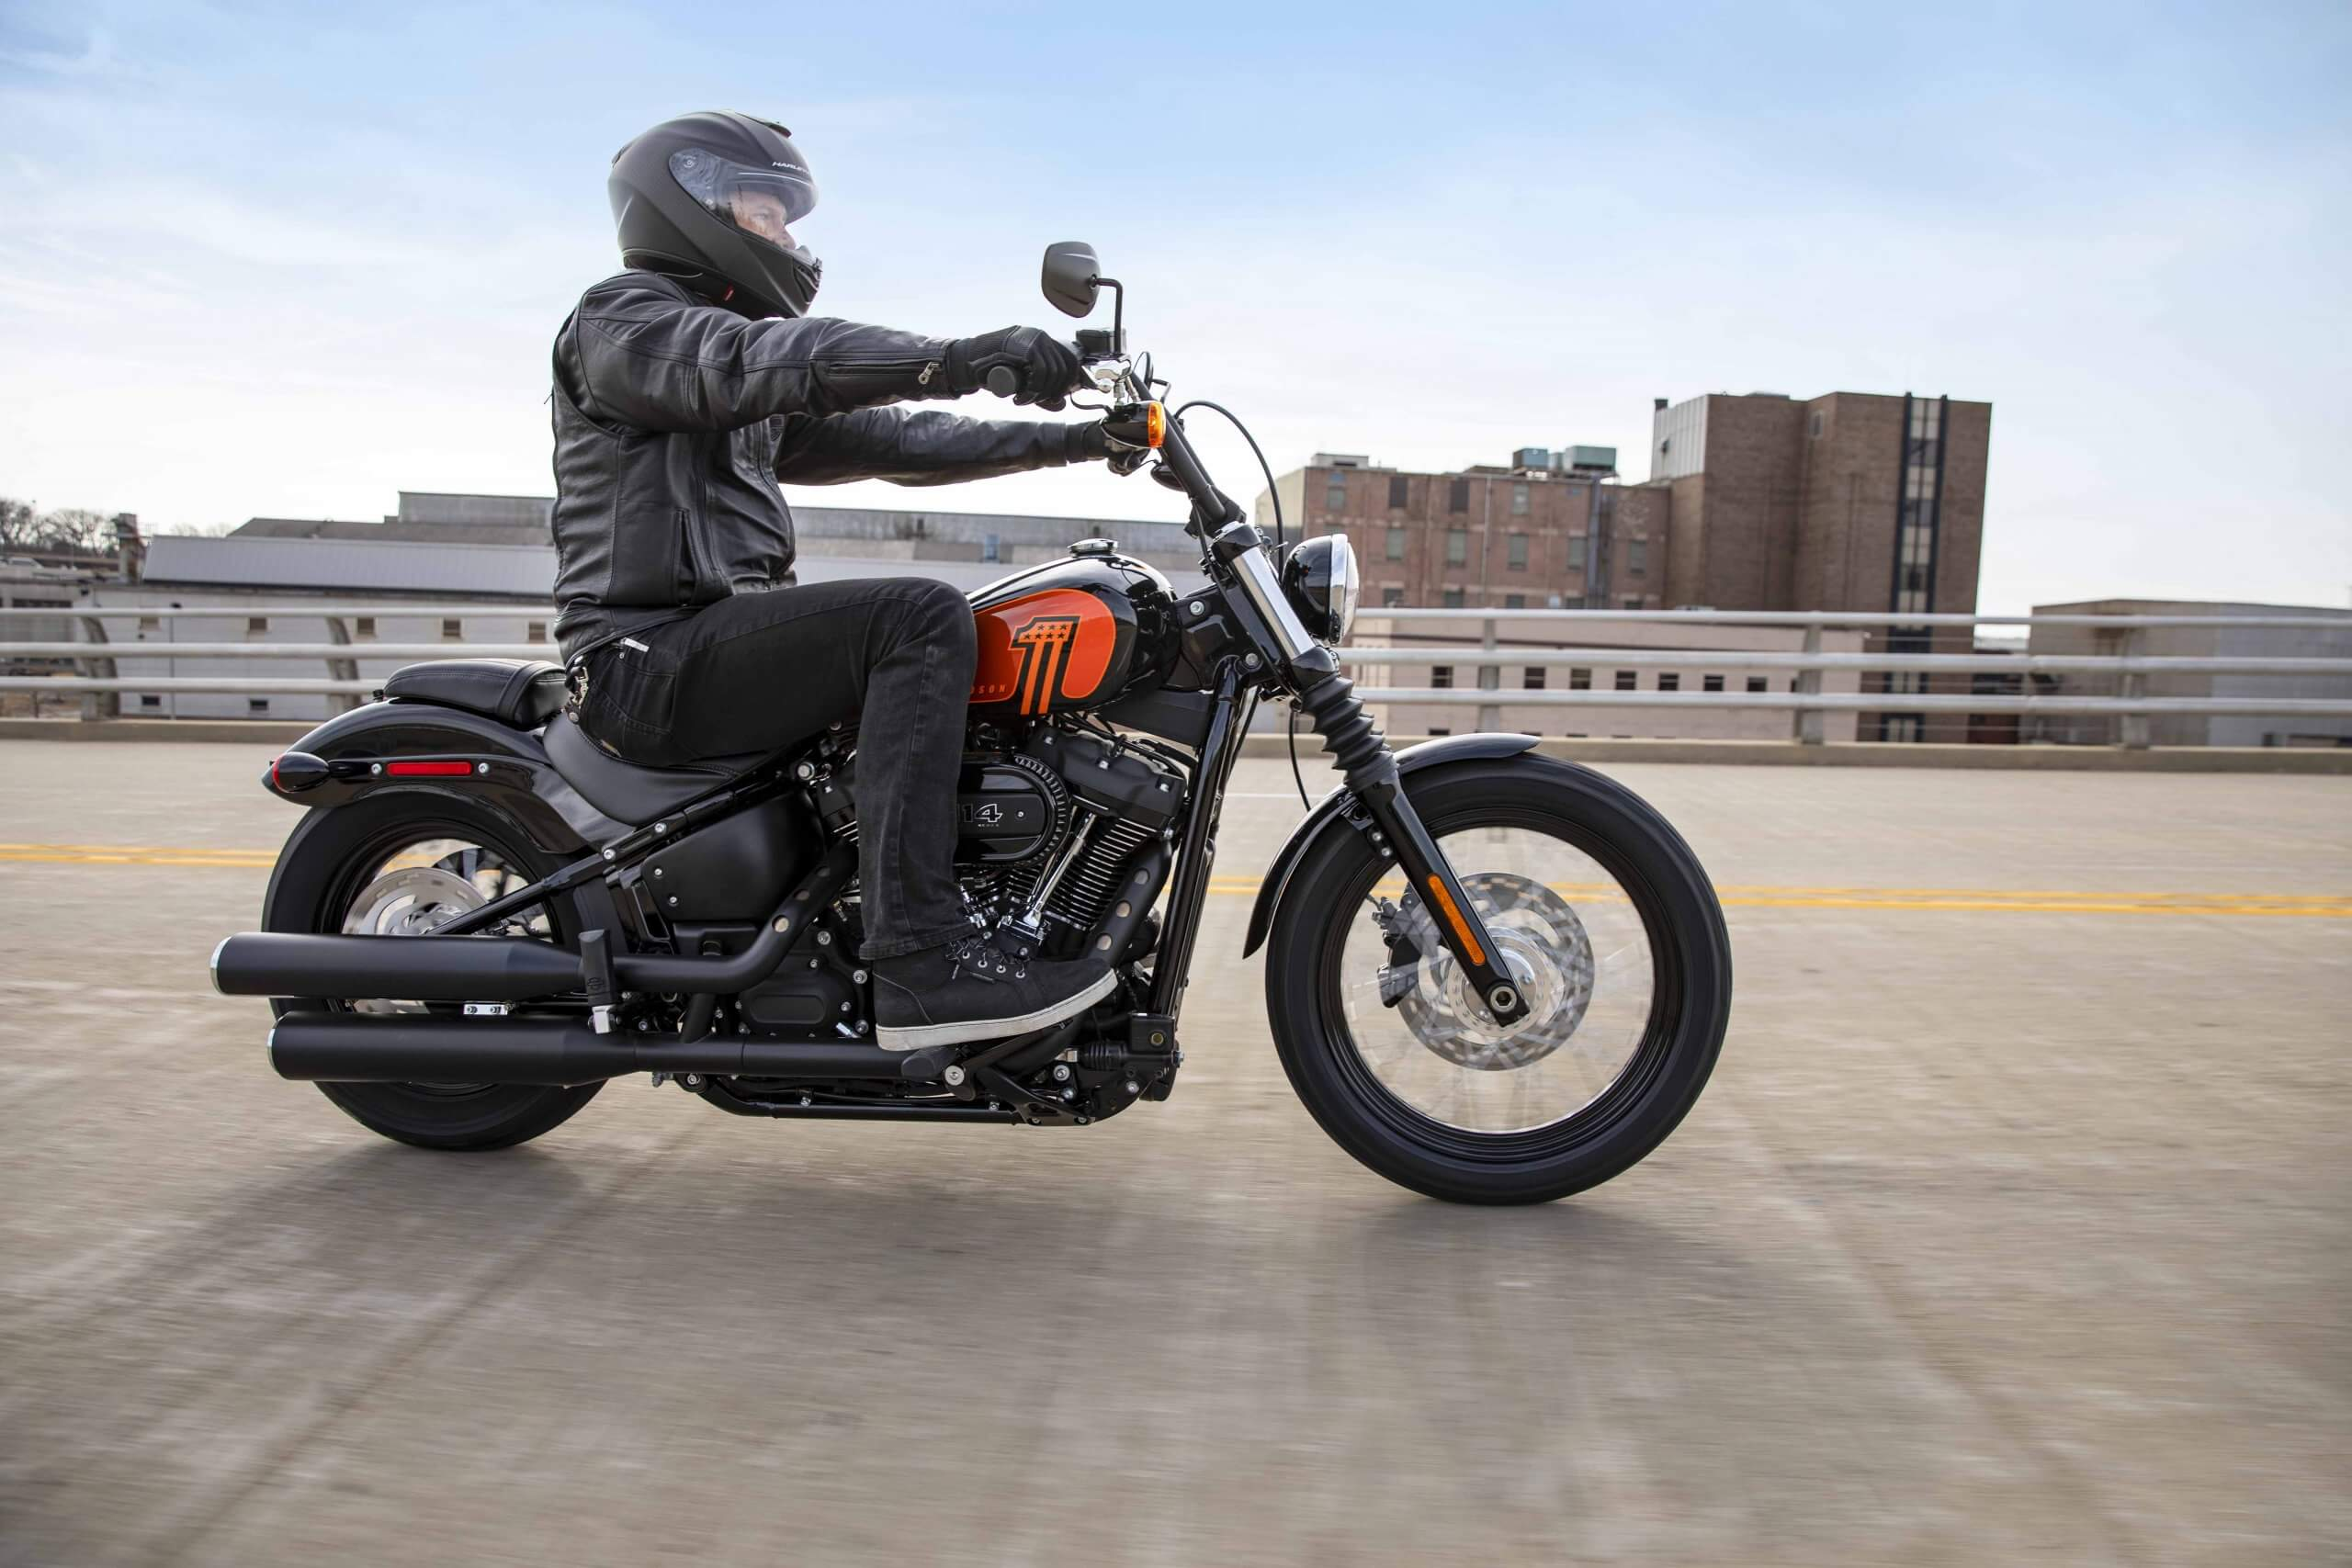 Milwaukee-Eight® 114 engine, the most powerful option for a Softail®